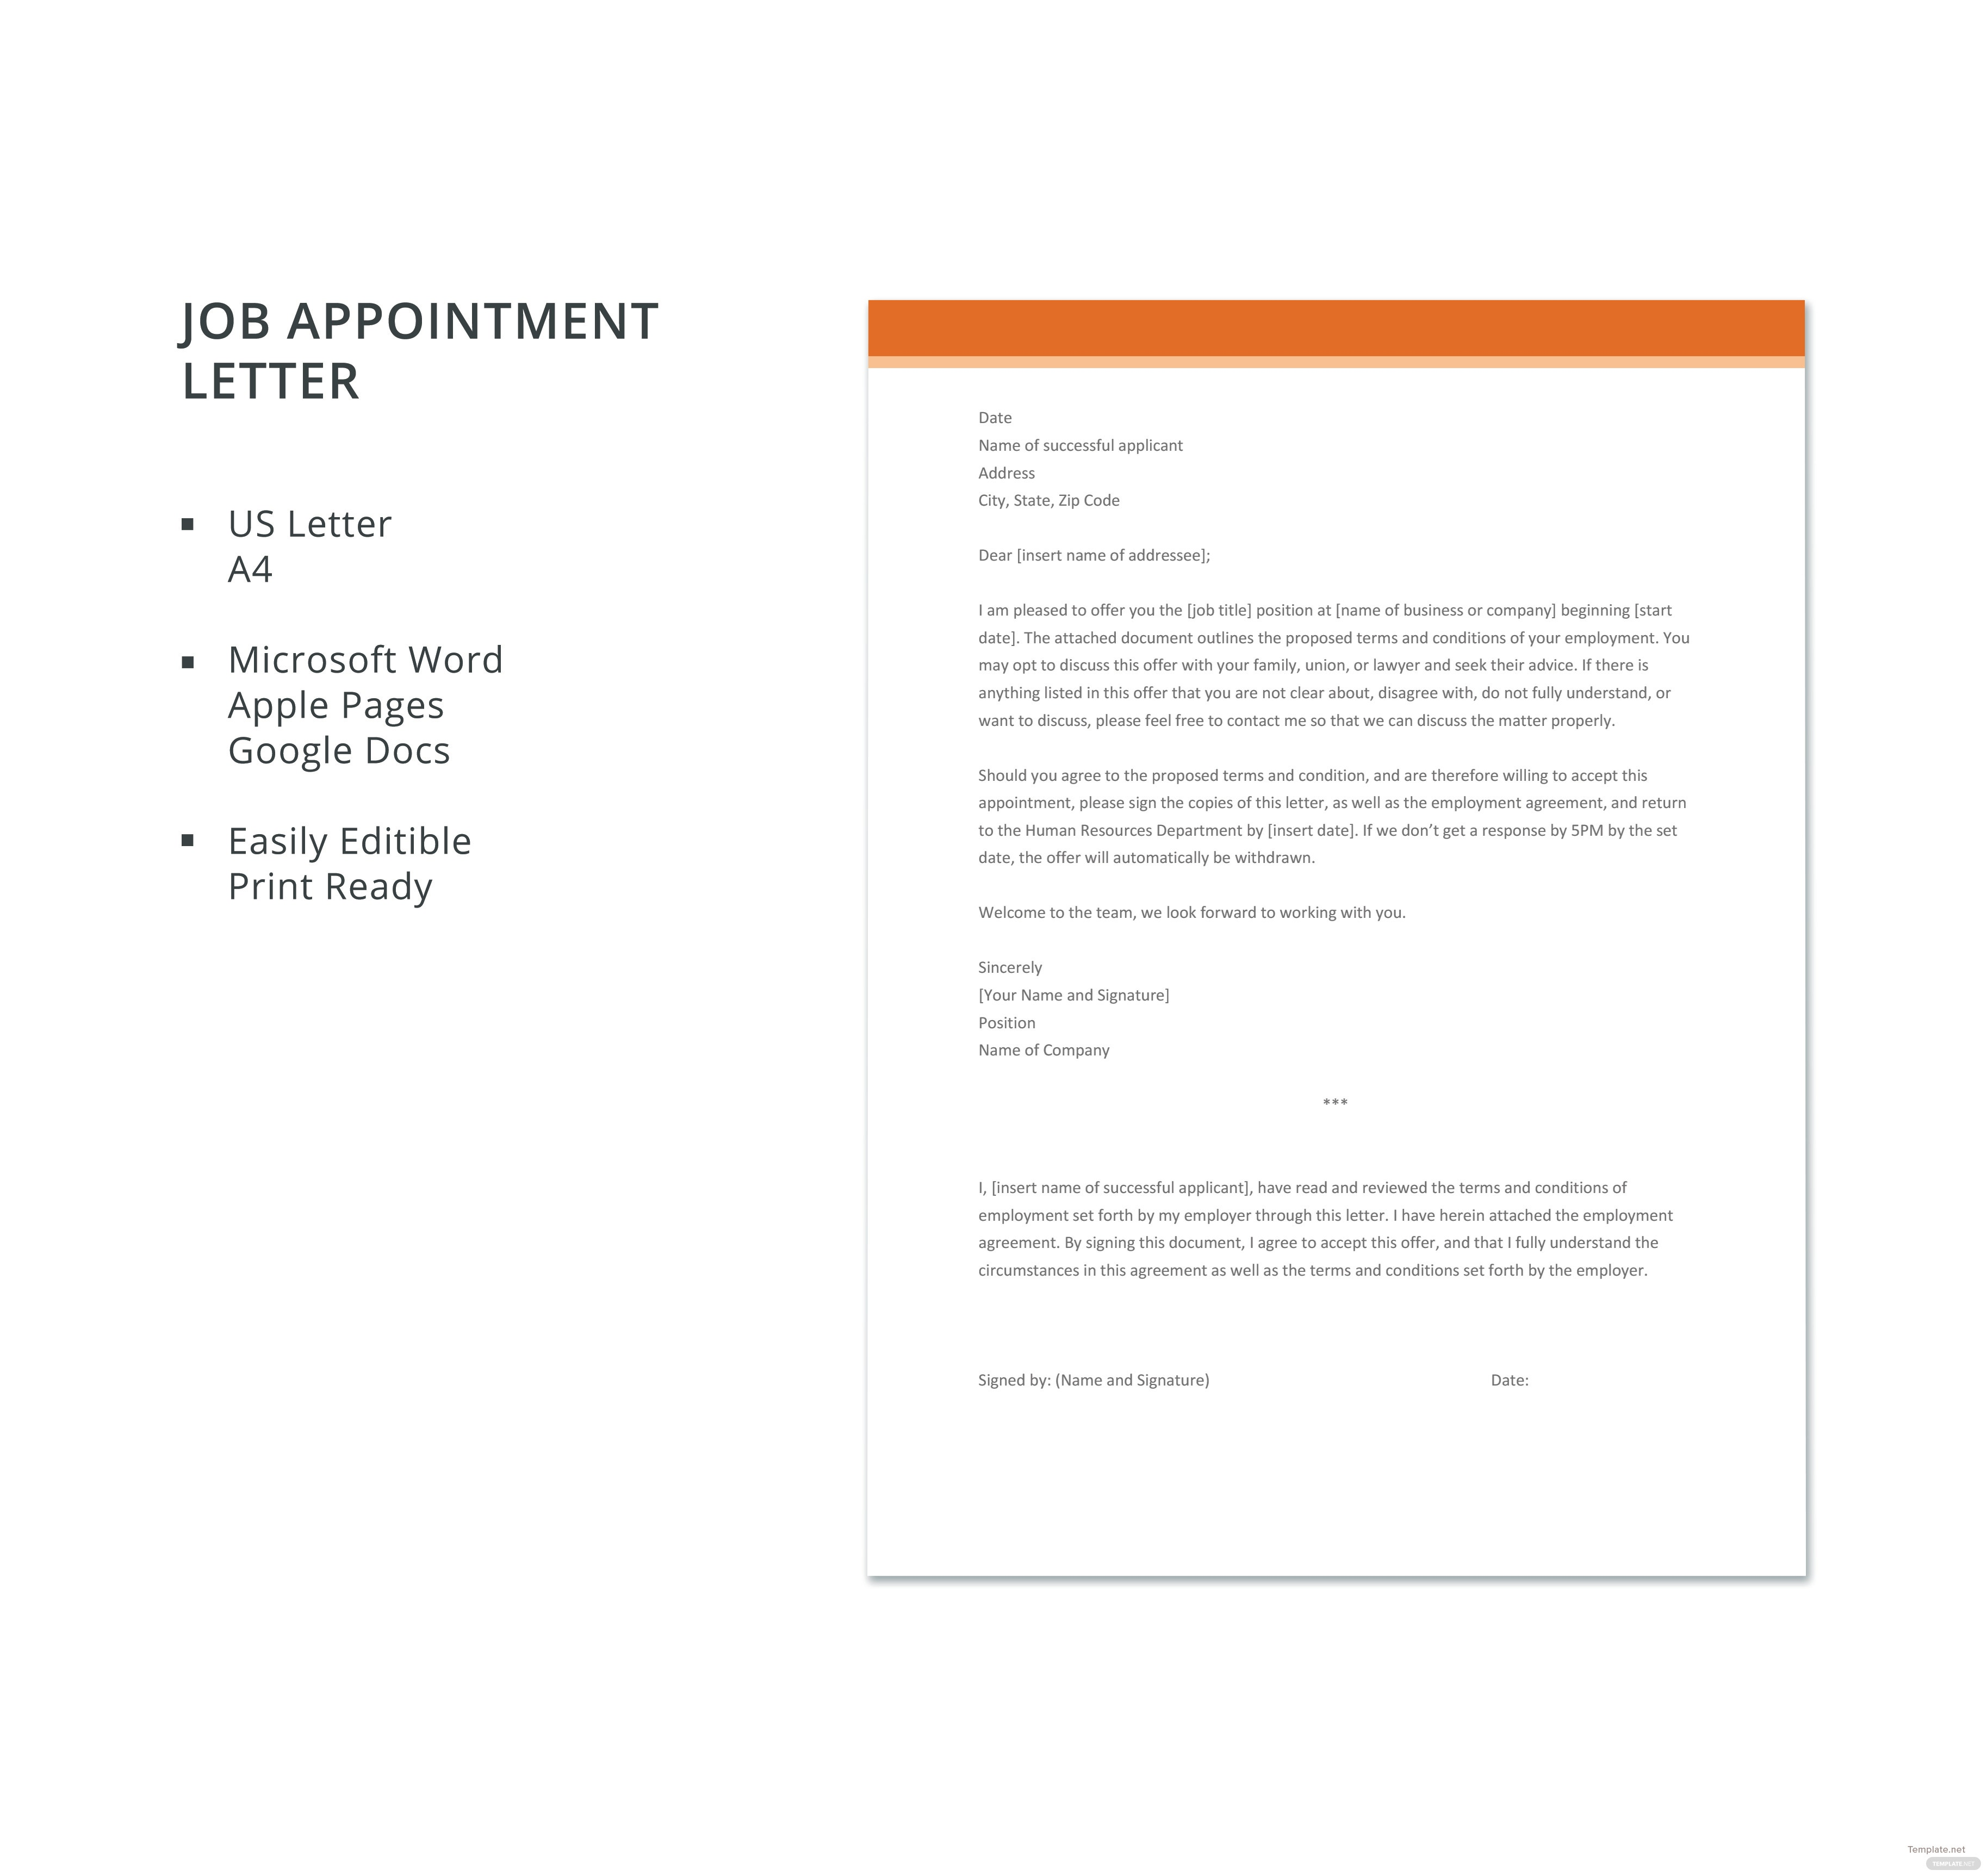 Job appointment letter template in microsoft word apple pages job appointment letter template thecheapjerseys Image collections